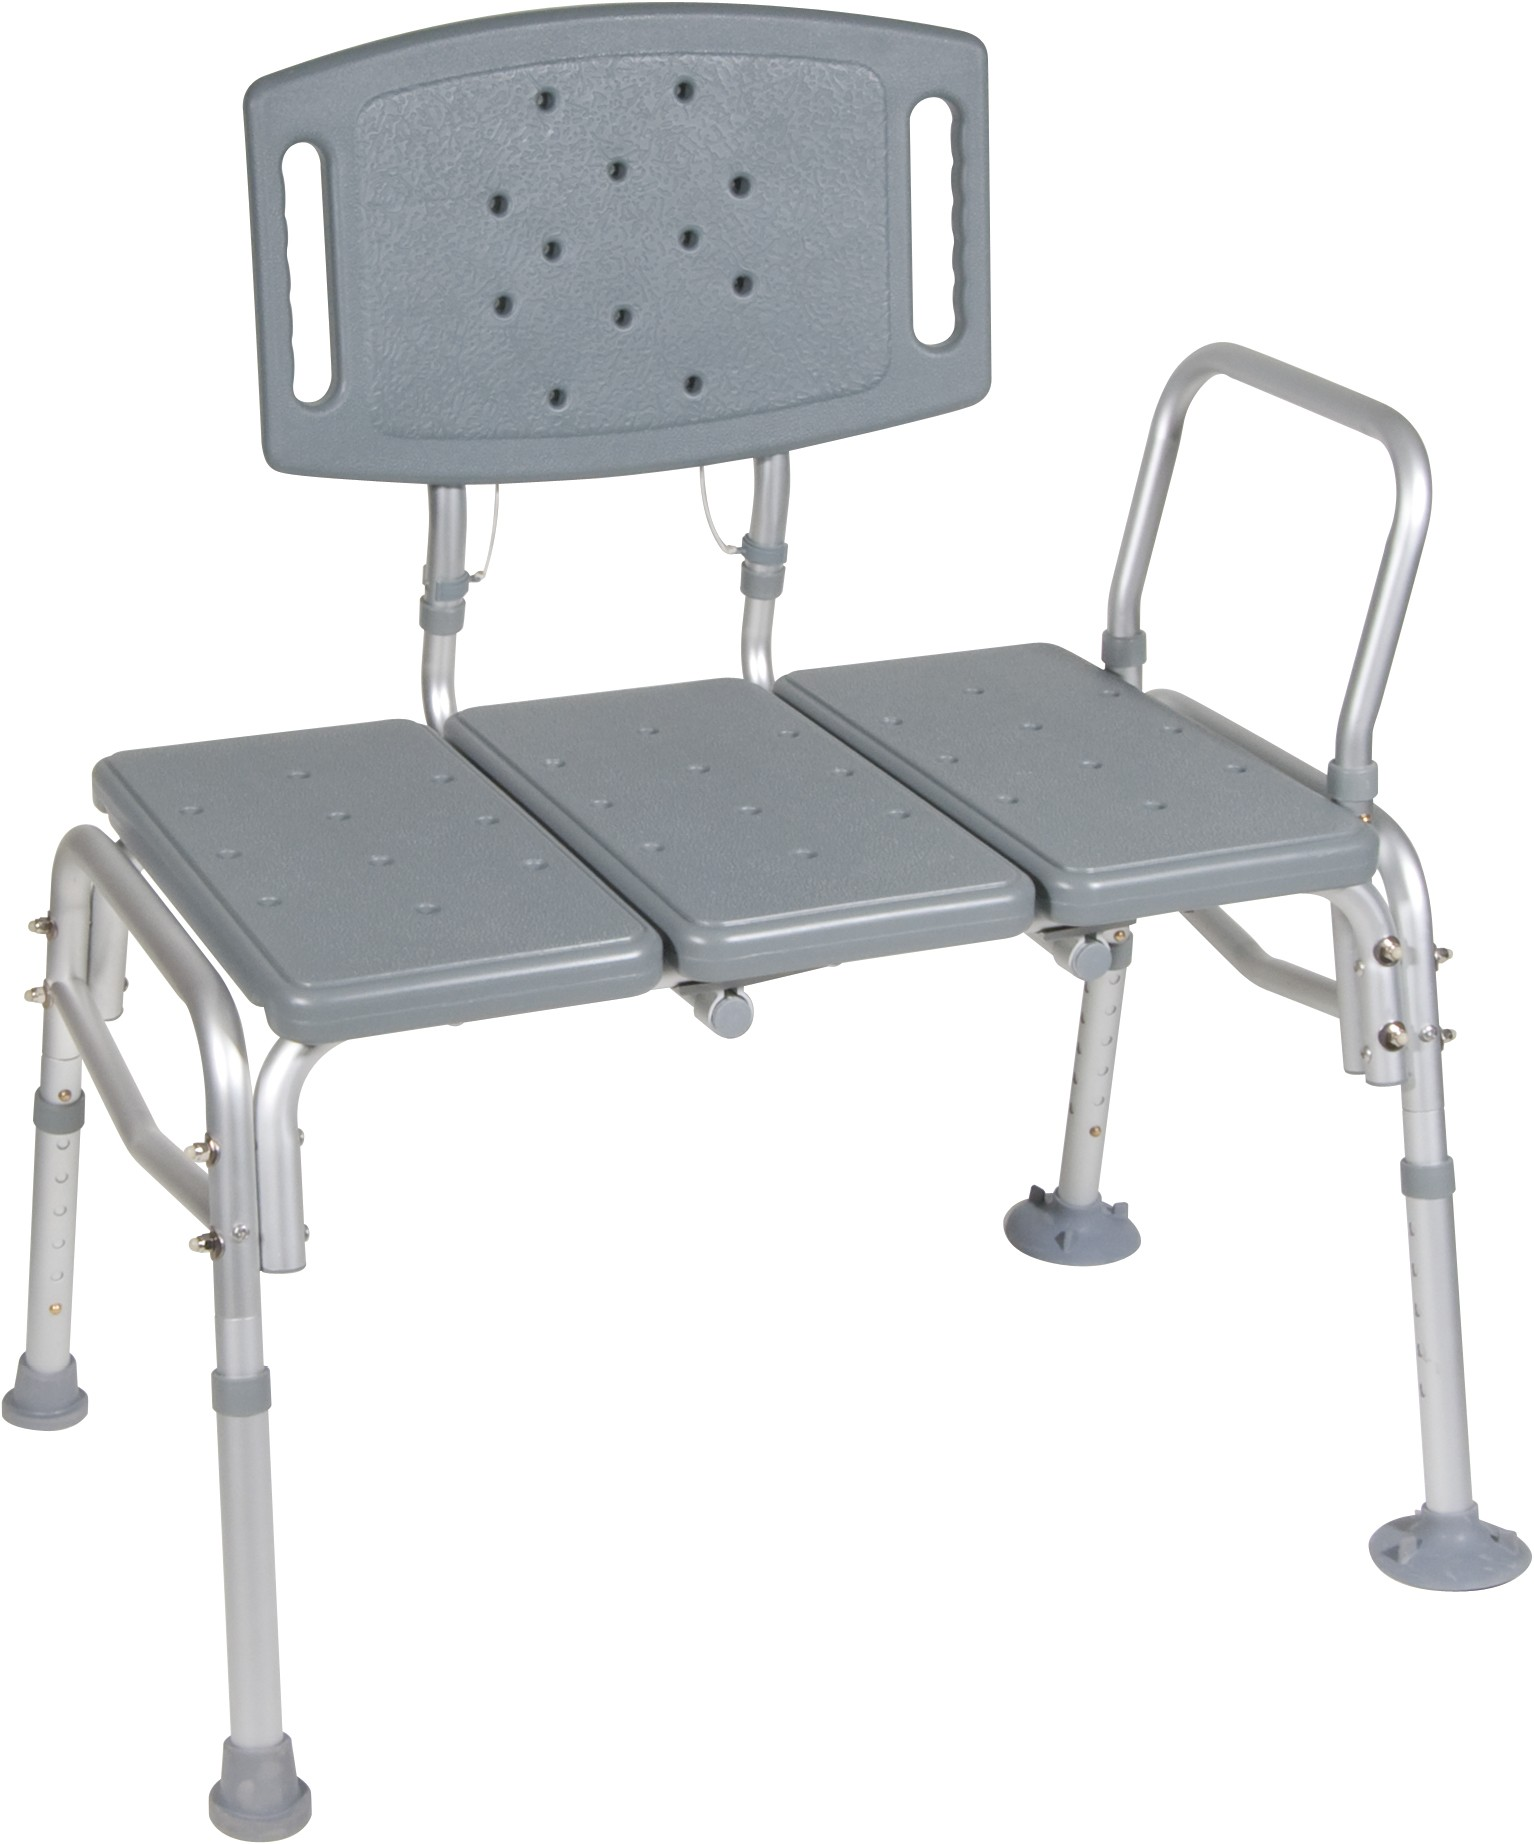 Shower Transfer Chair | Bath Bench Transfer | Transfer Tub Bench